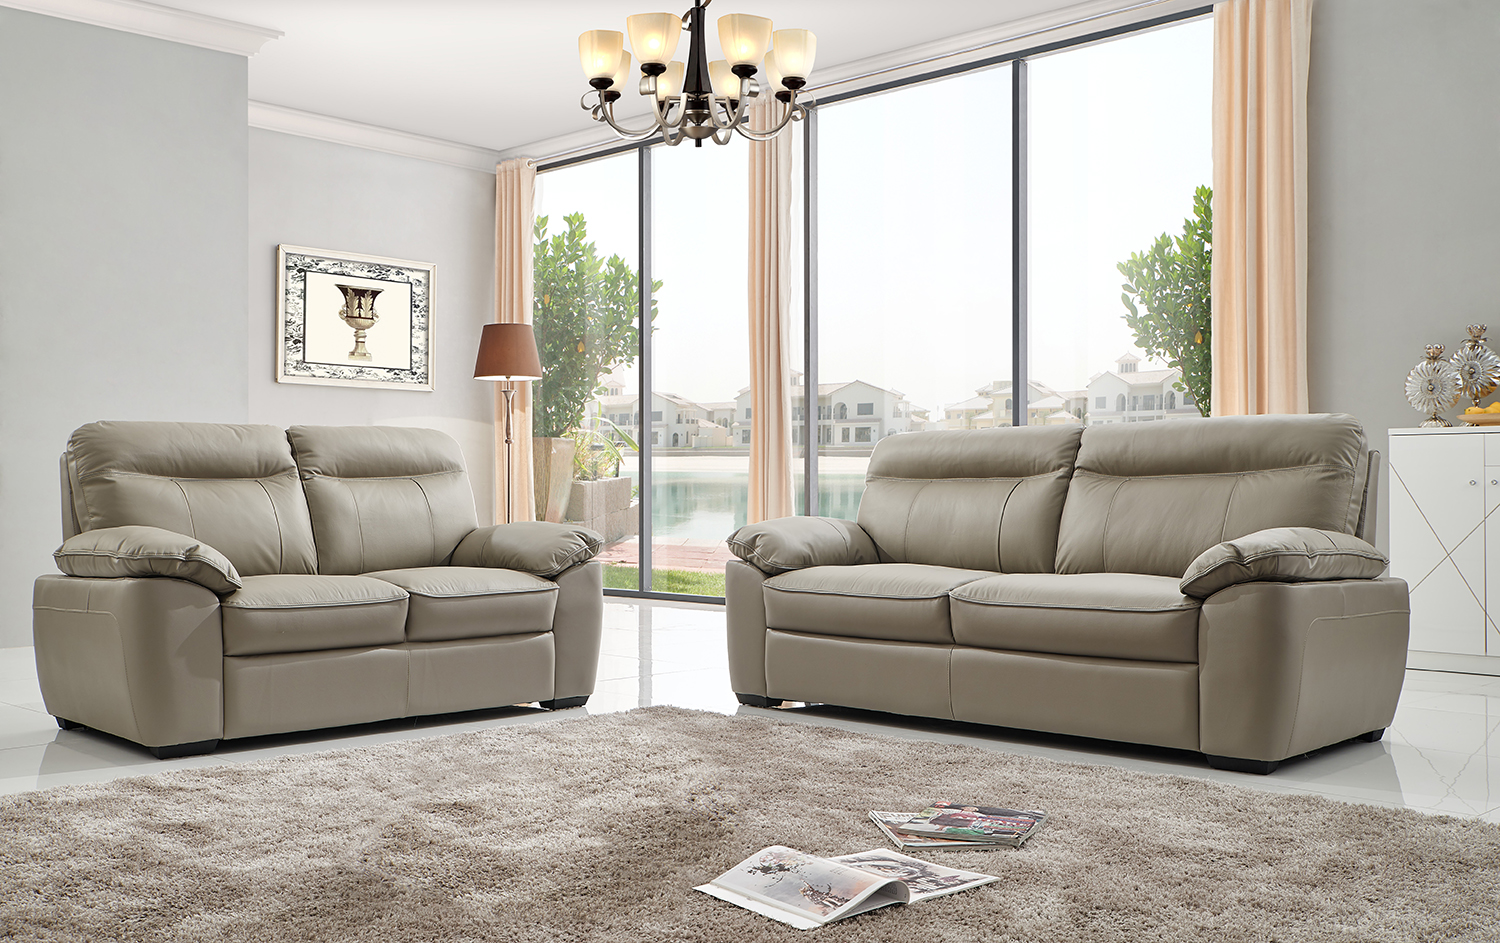 Uk Sofa Wholesale Ltd Home Page Tcs Furniture